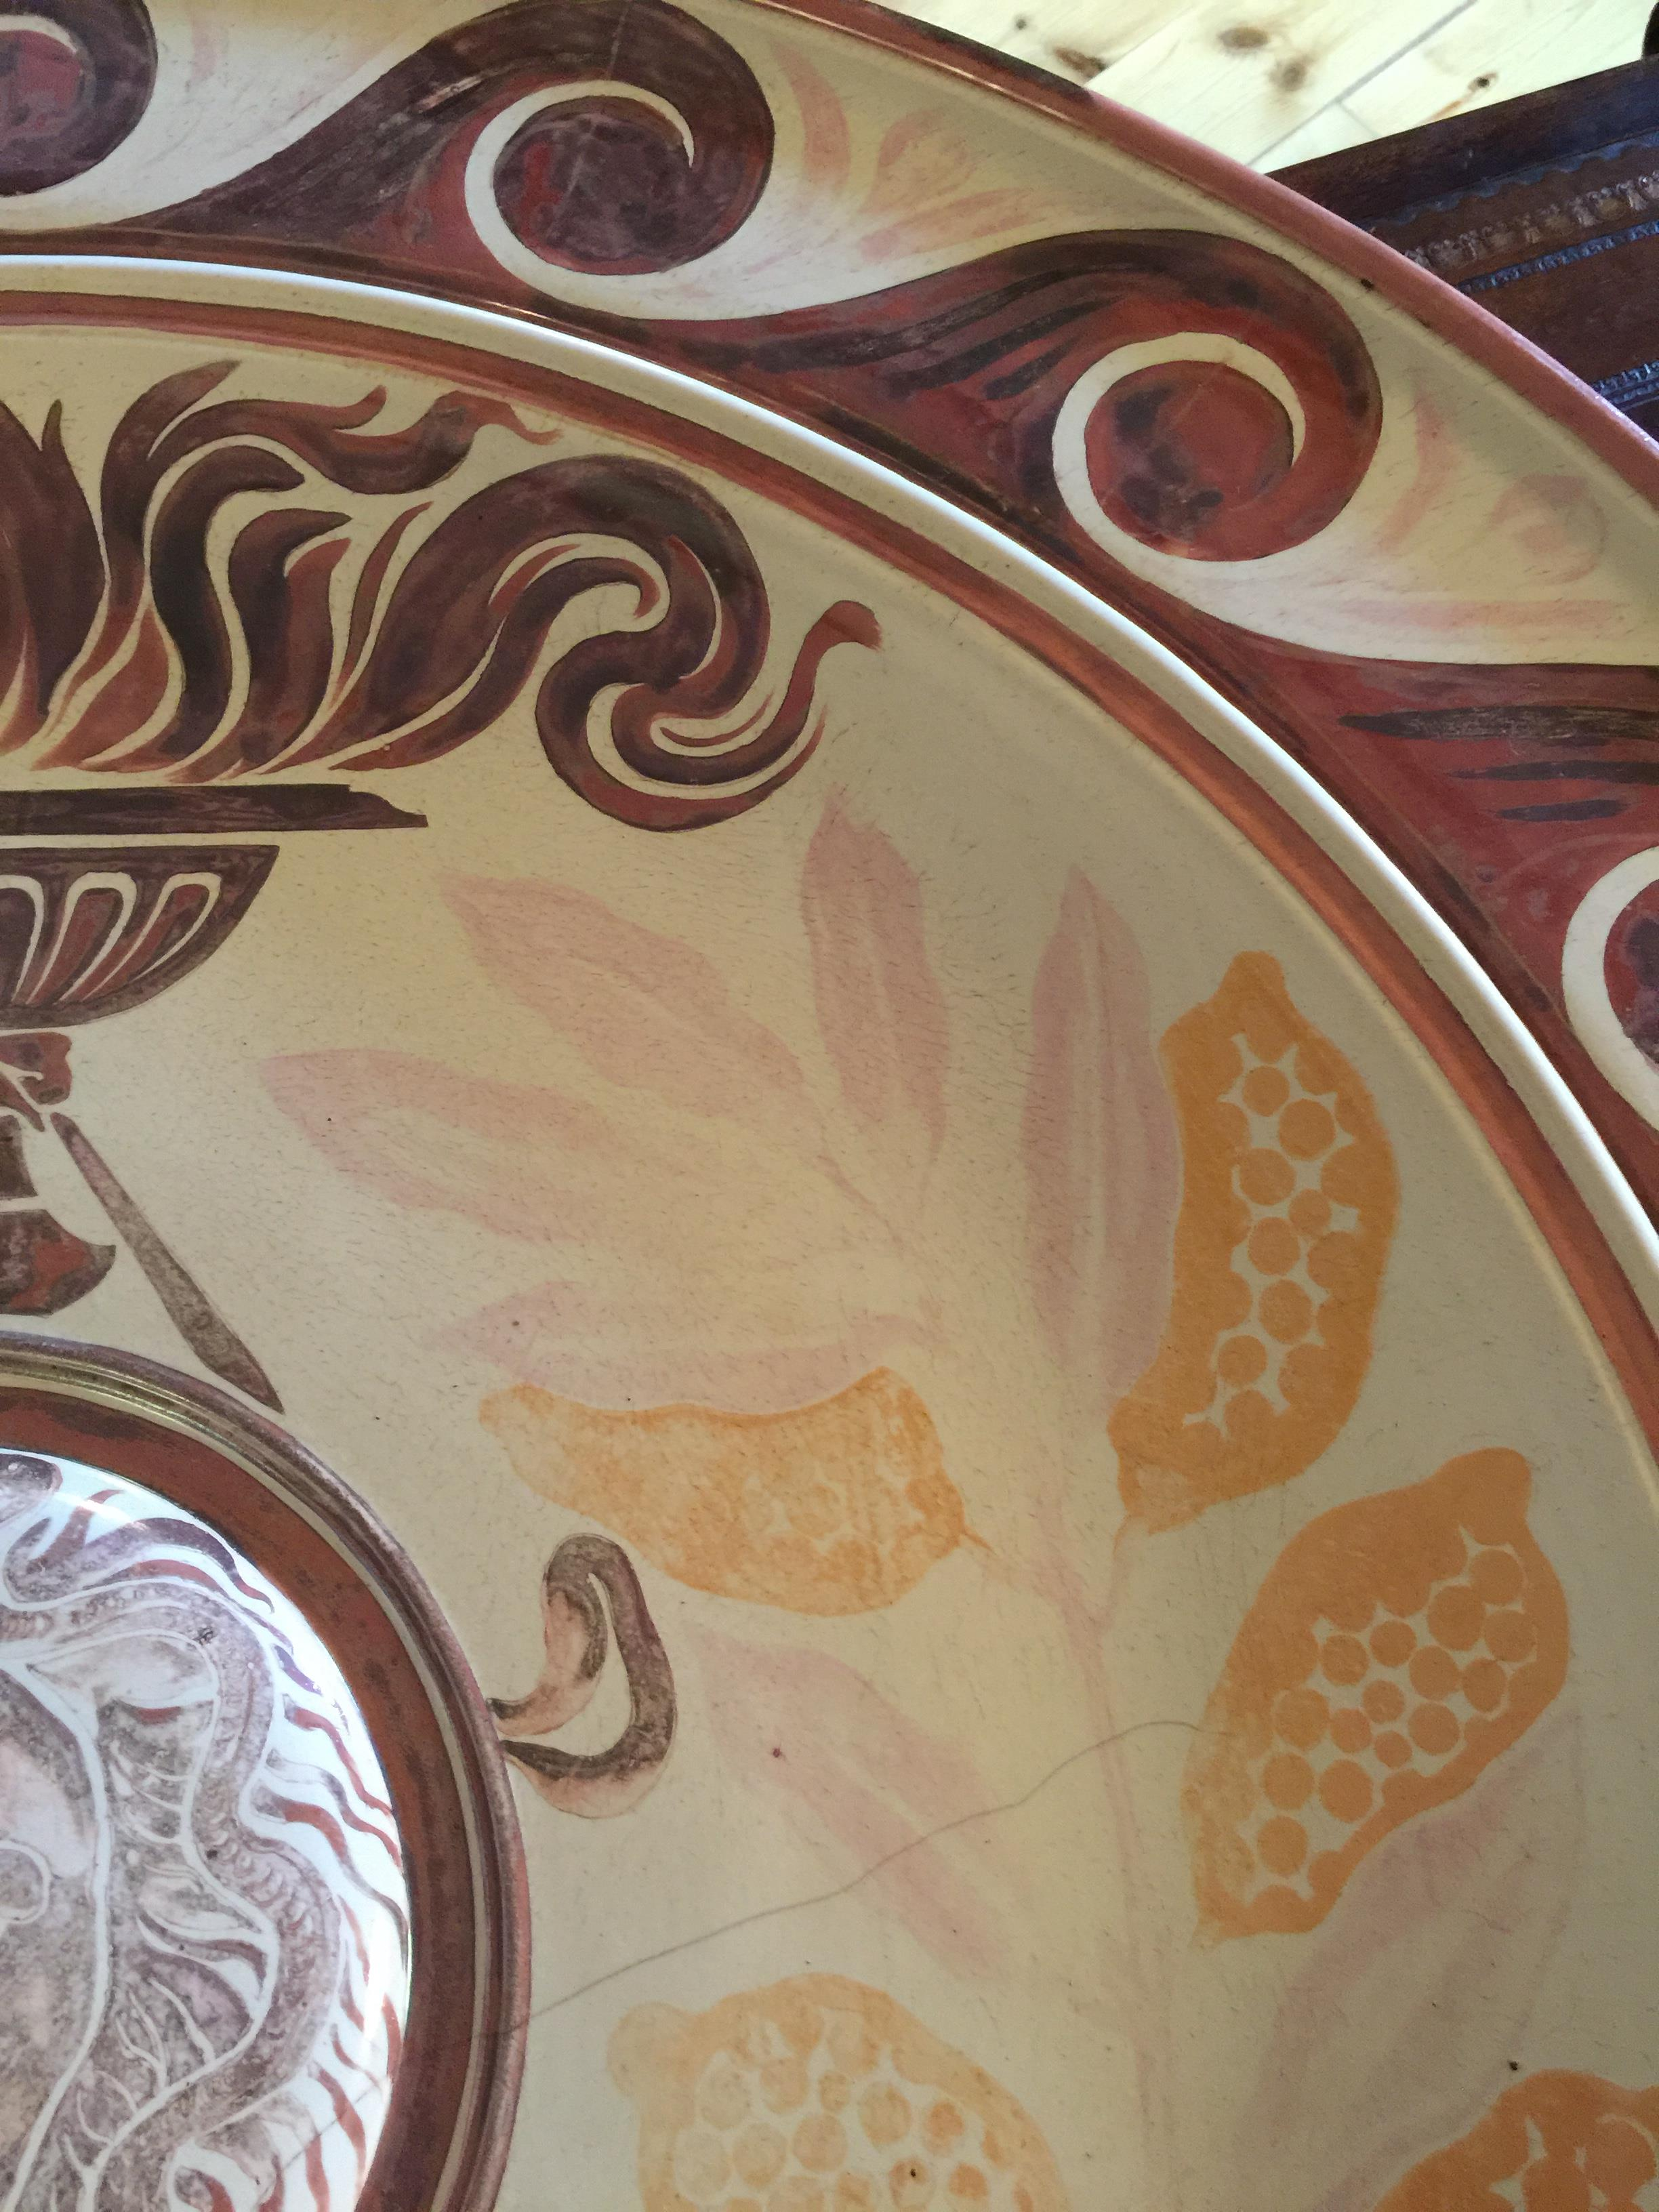 A monumental Victorian Arts & Crafts lustre wall charger by Maw & Co, Broseley - Image 6 of 24